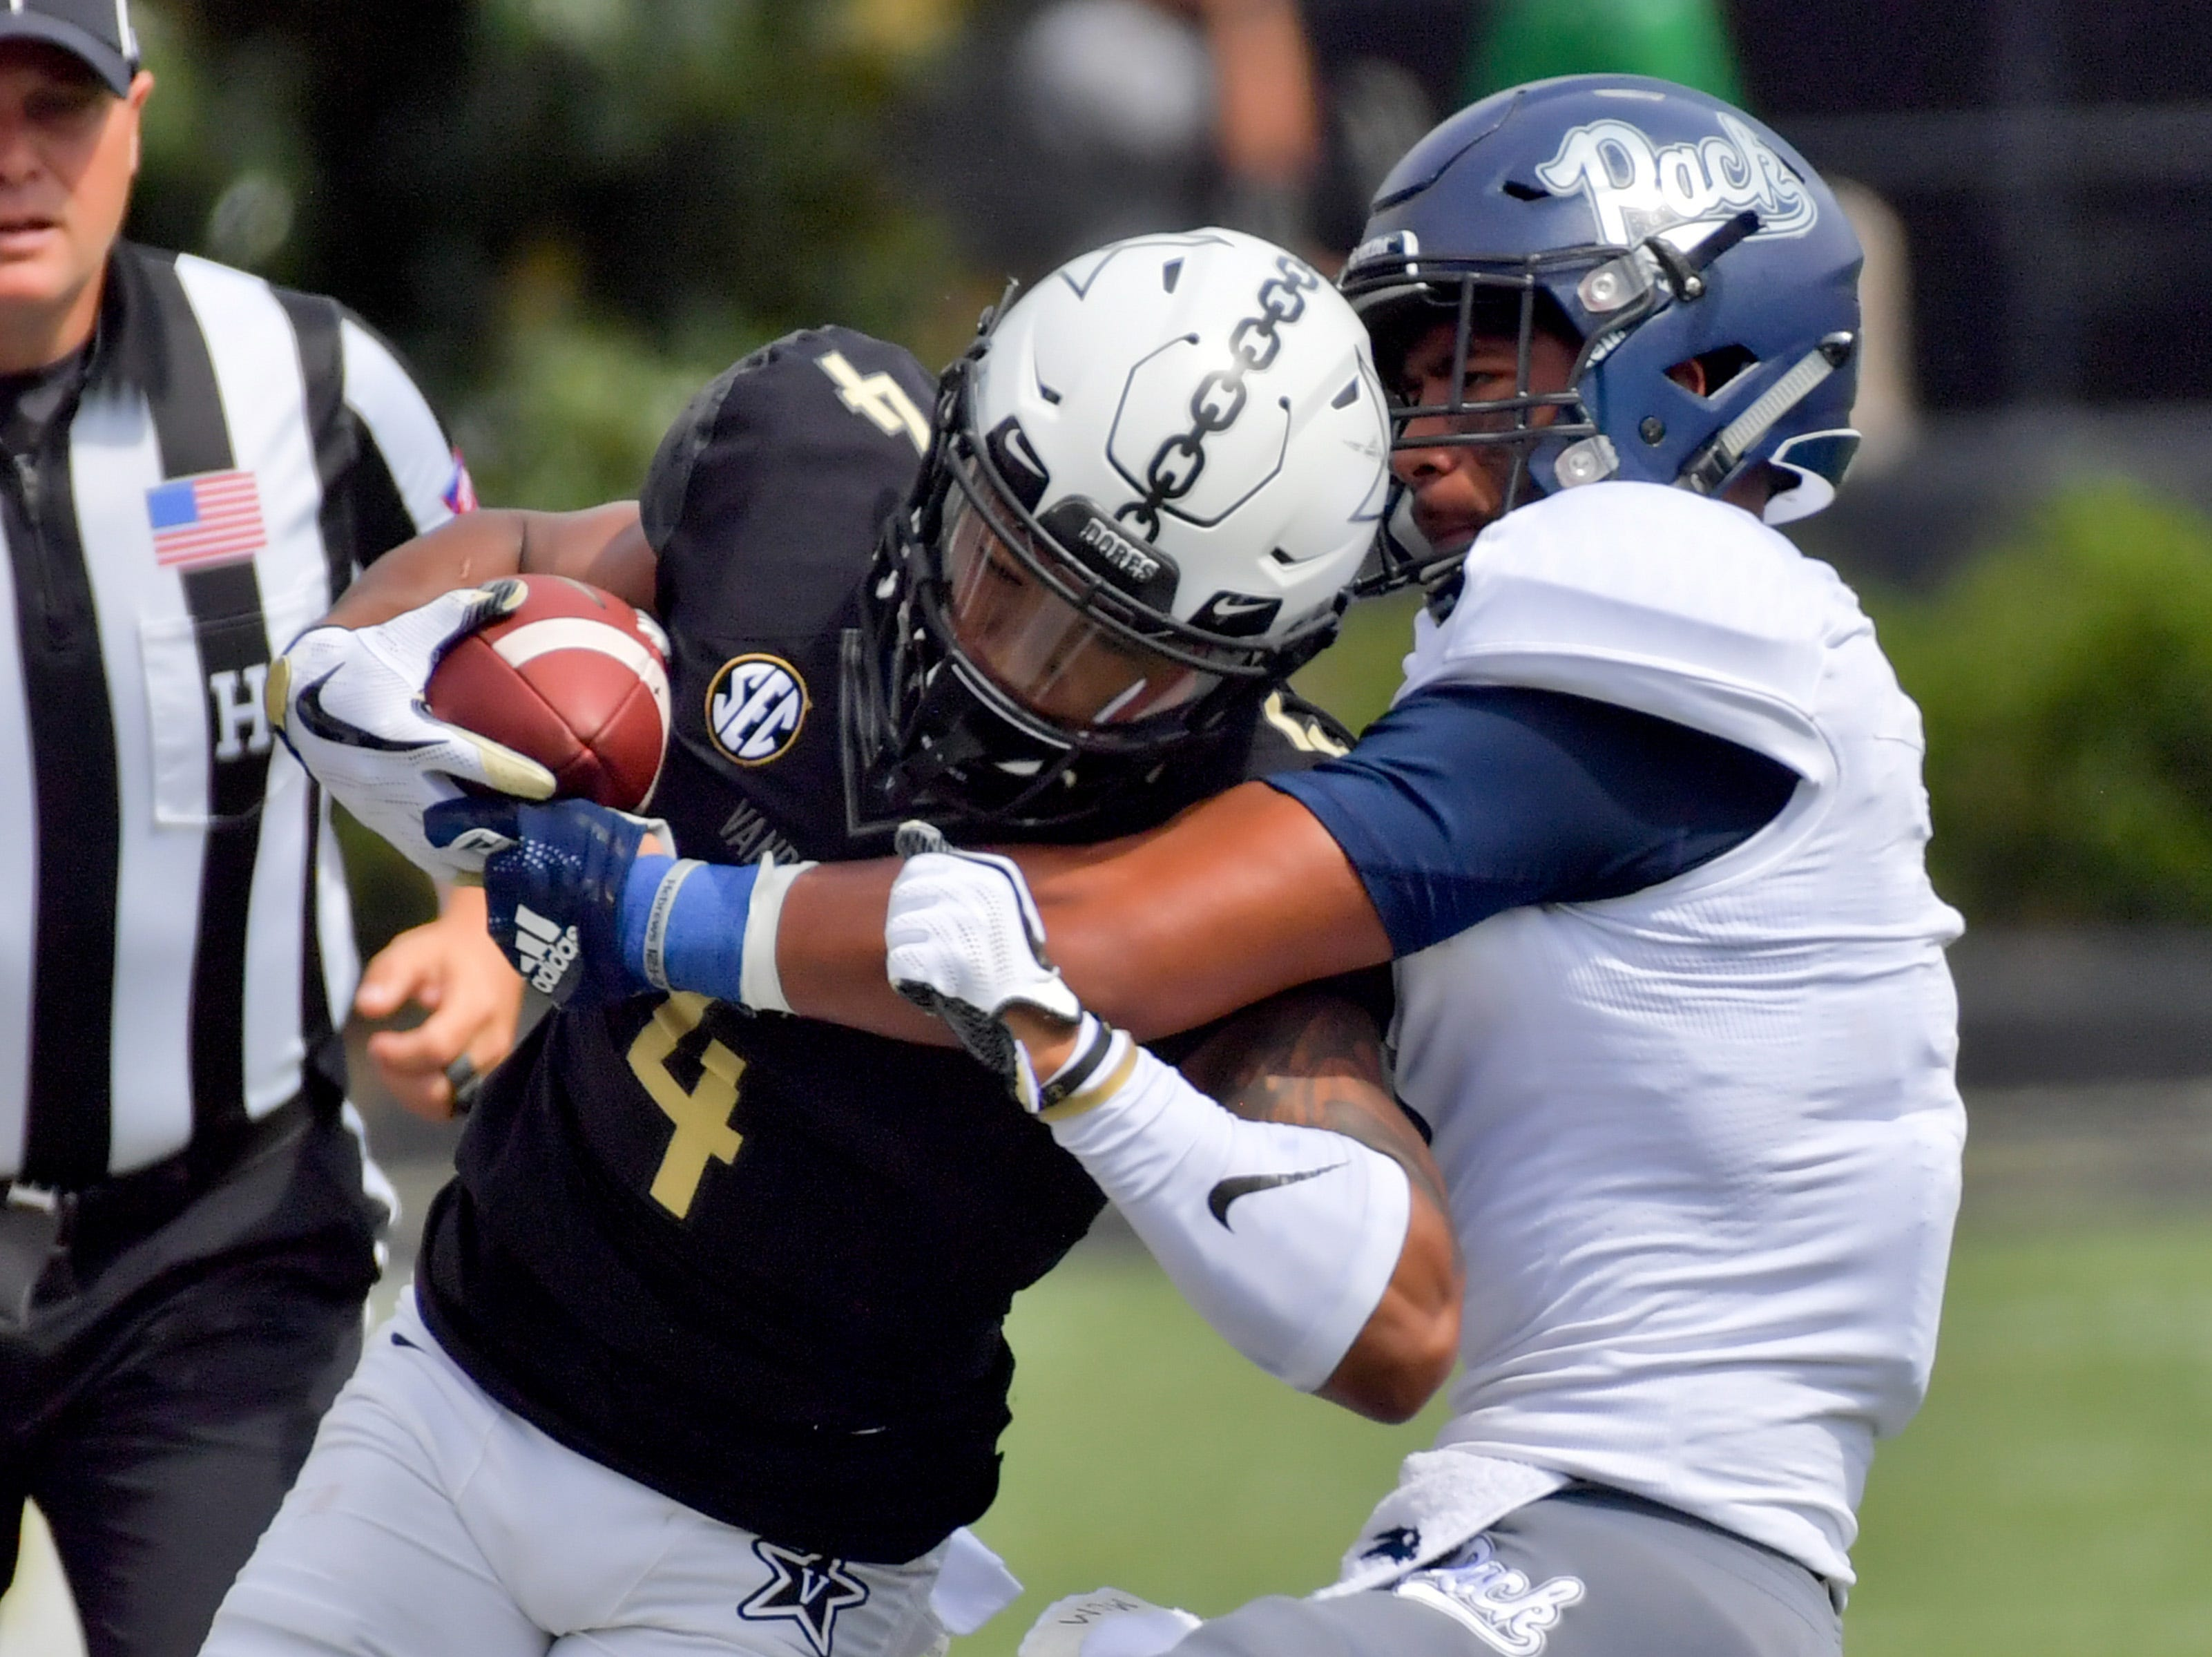 Vanderbilt wide receiver Donaven Tennyson tries to extend a play against Nevada.